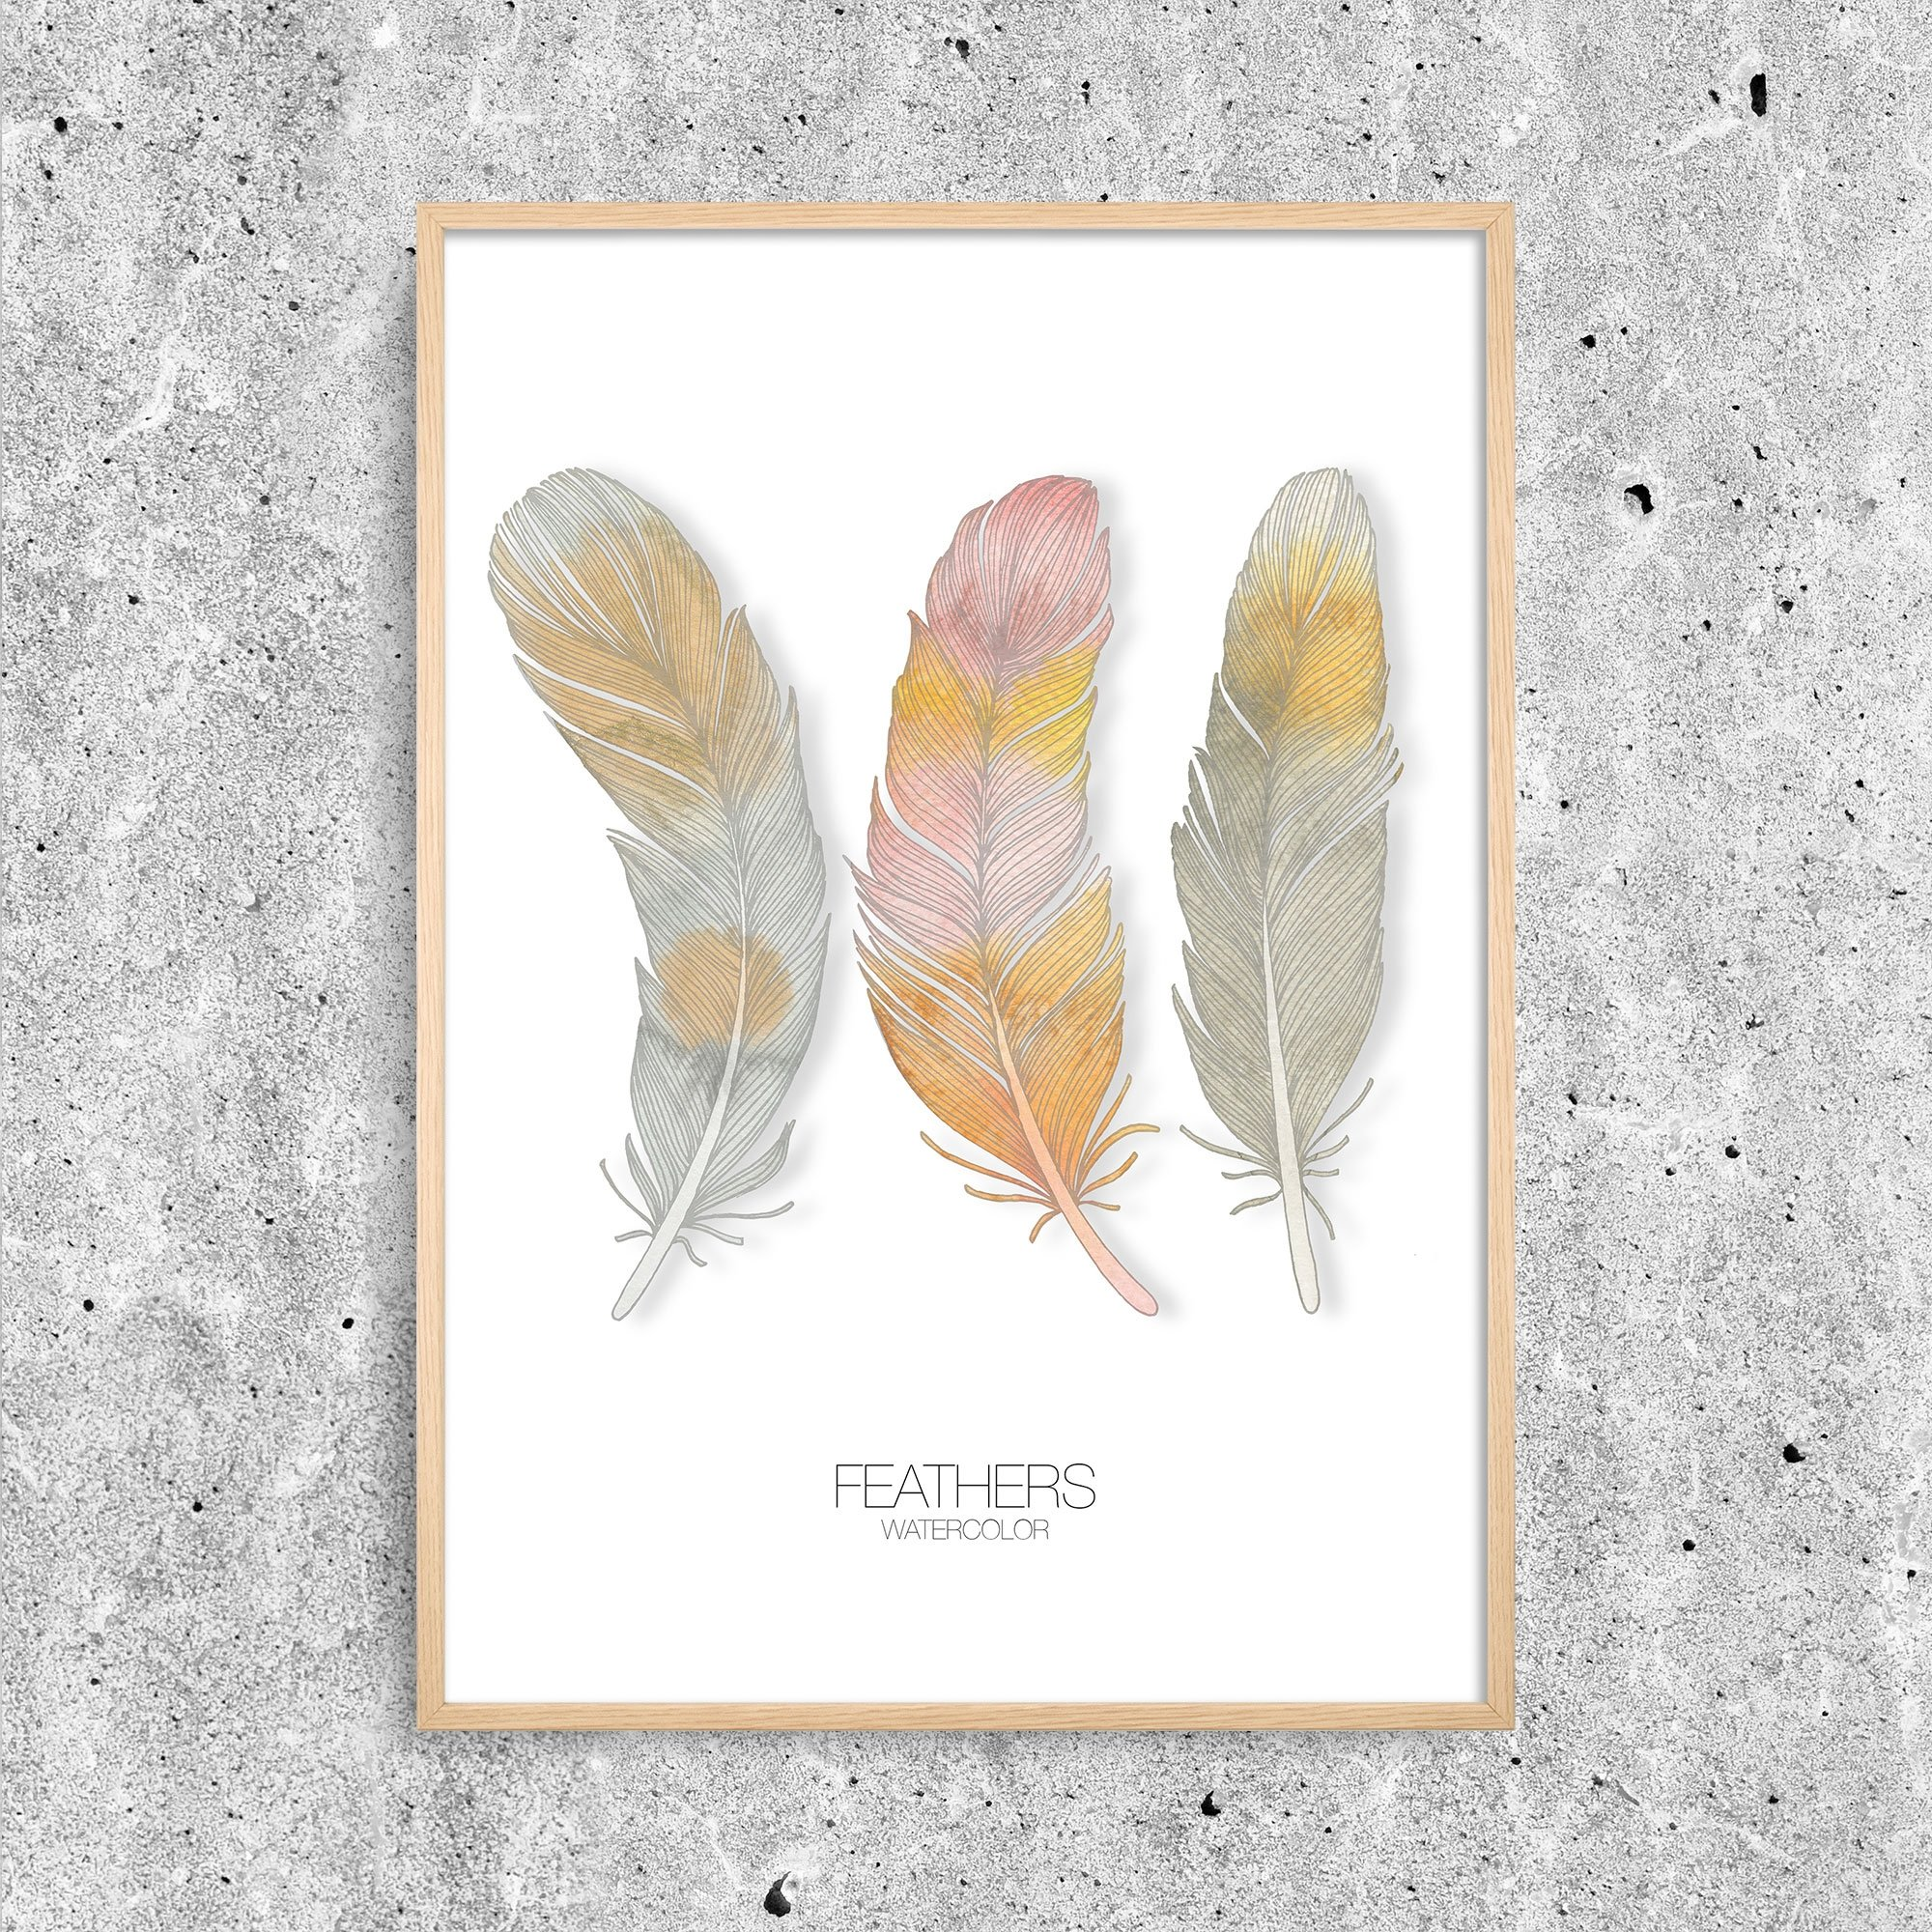 Feathers Watercolour 1